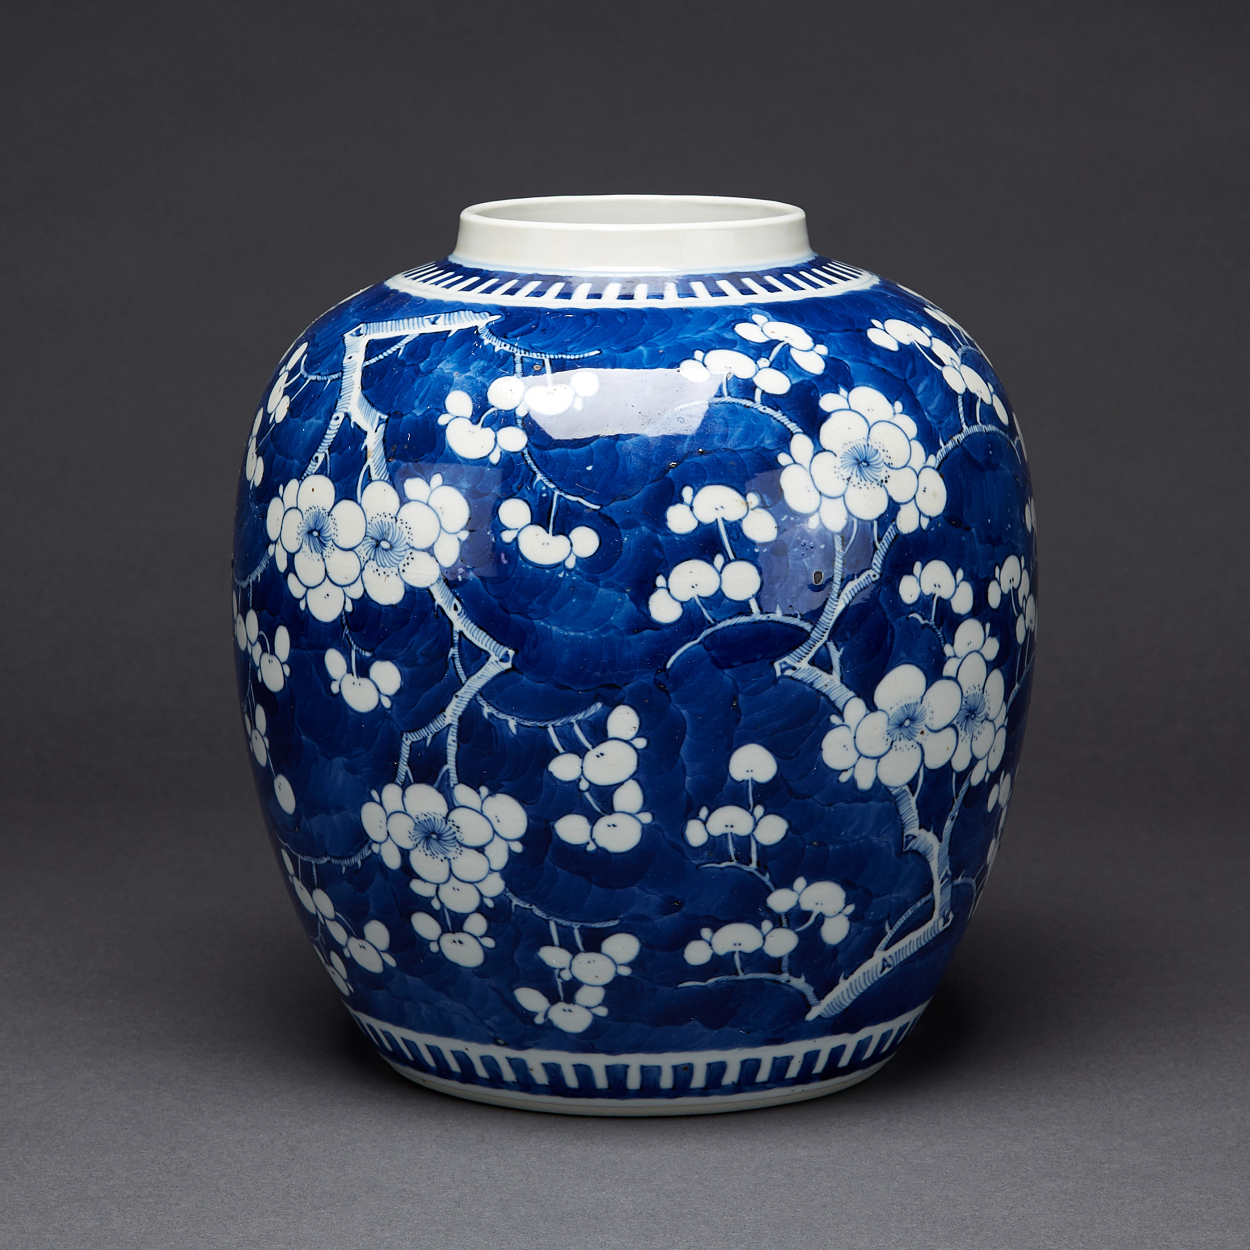 A Blue and White Prunus Jar